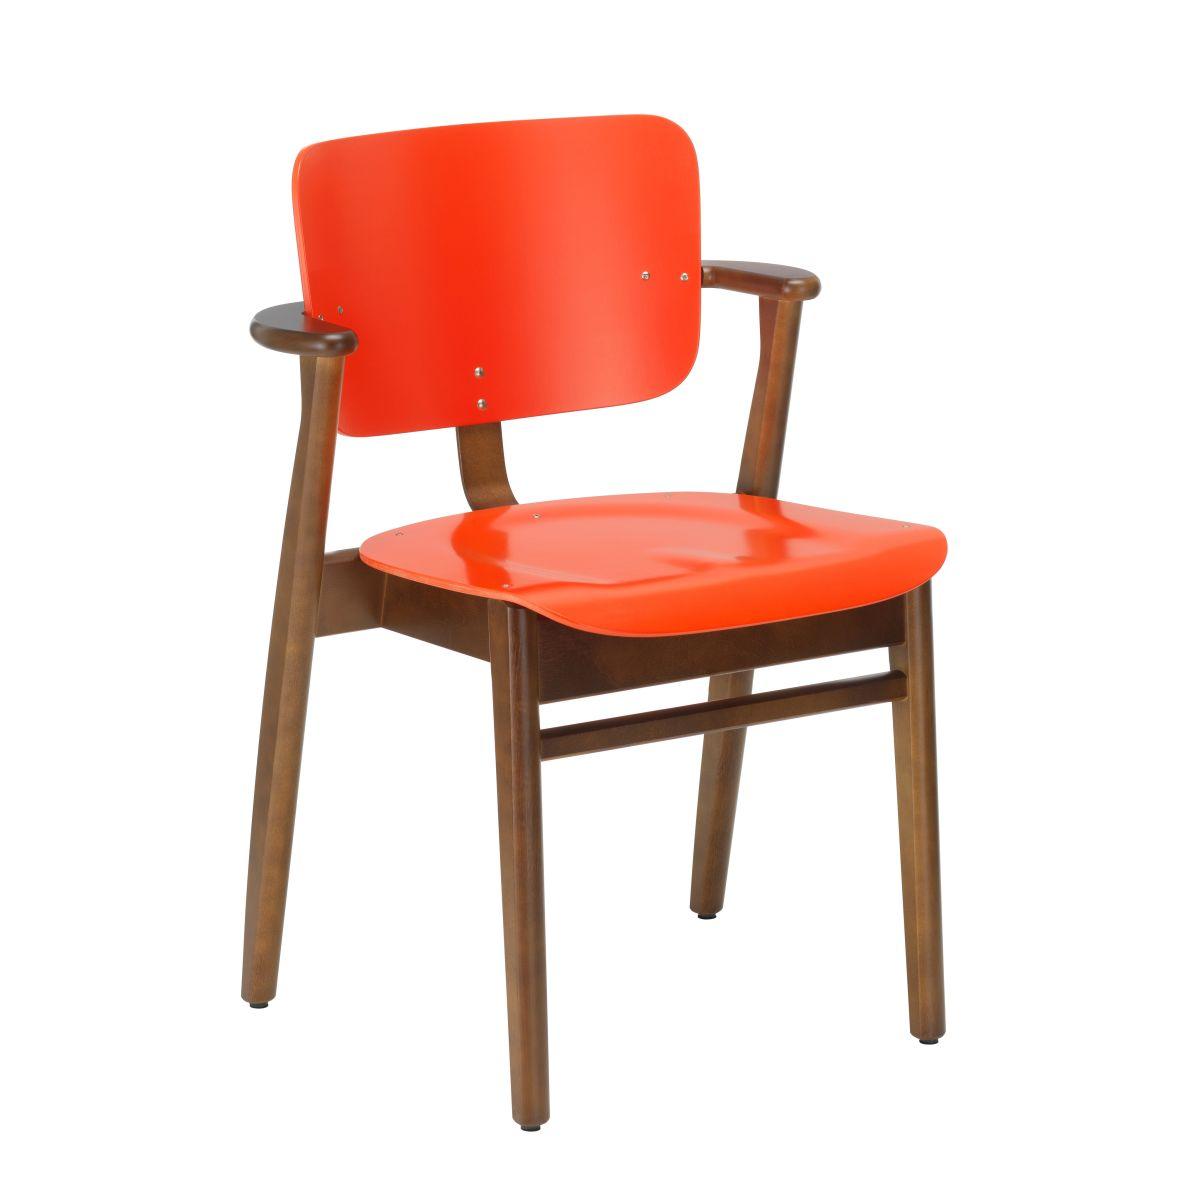 Domus Chair walnut stain bright red lacquer_F